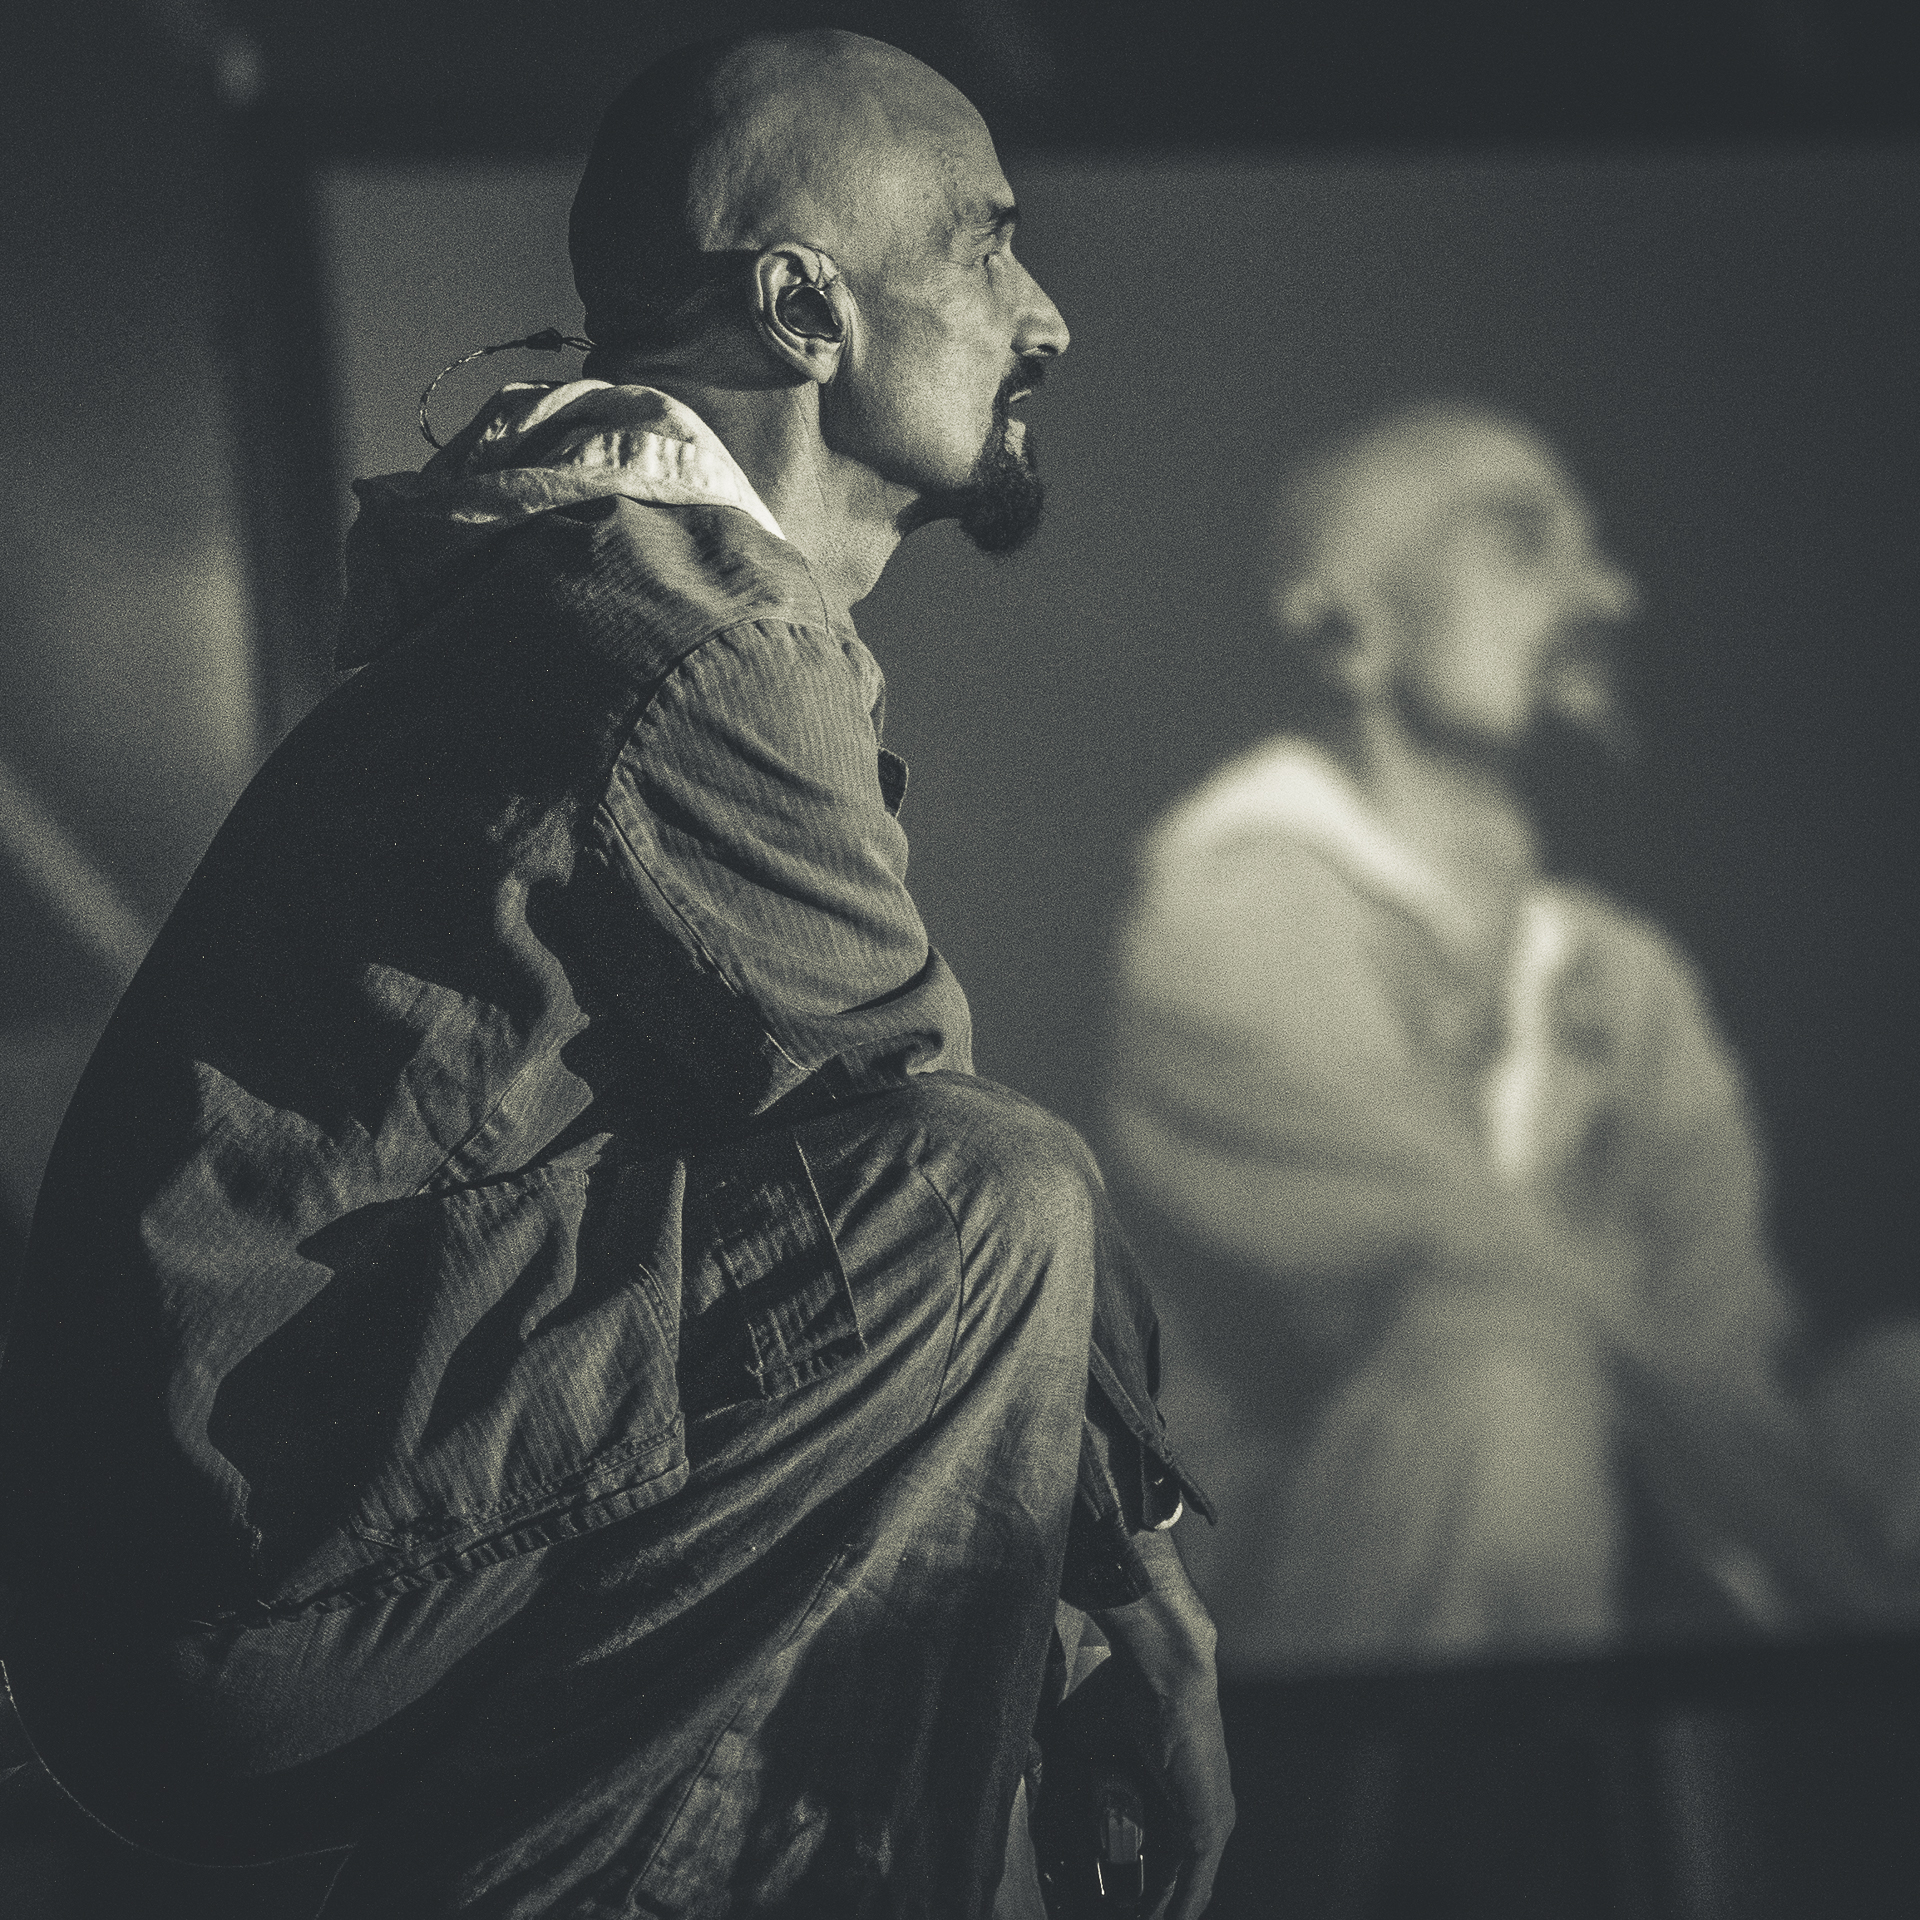 A B&W shot of Tim Booth of James squatting down whilst on stage at Lakefest 2019. A different out of focus shot of him on the on stage screen can be seen in the background.